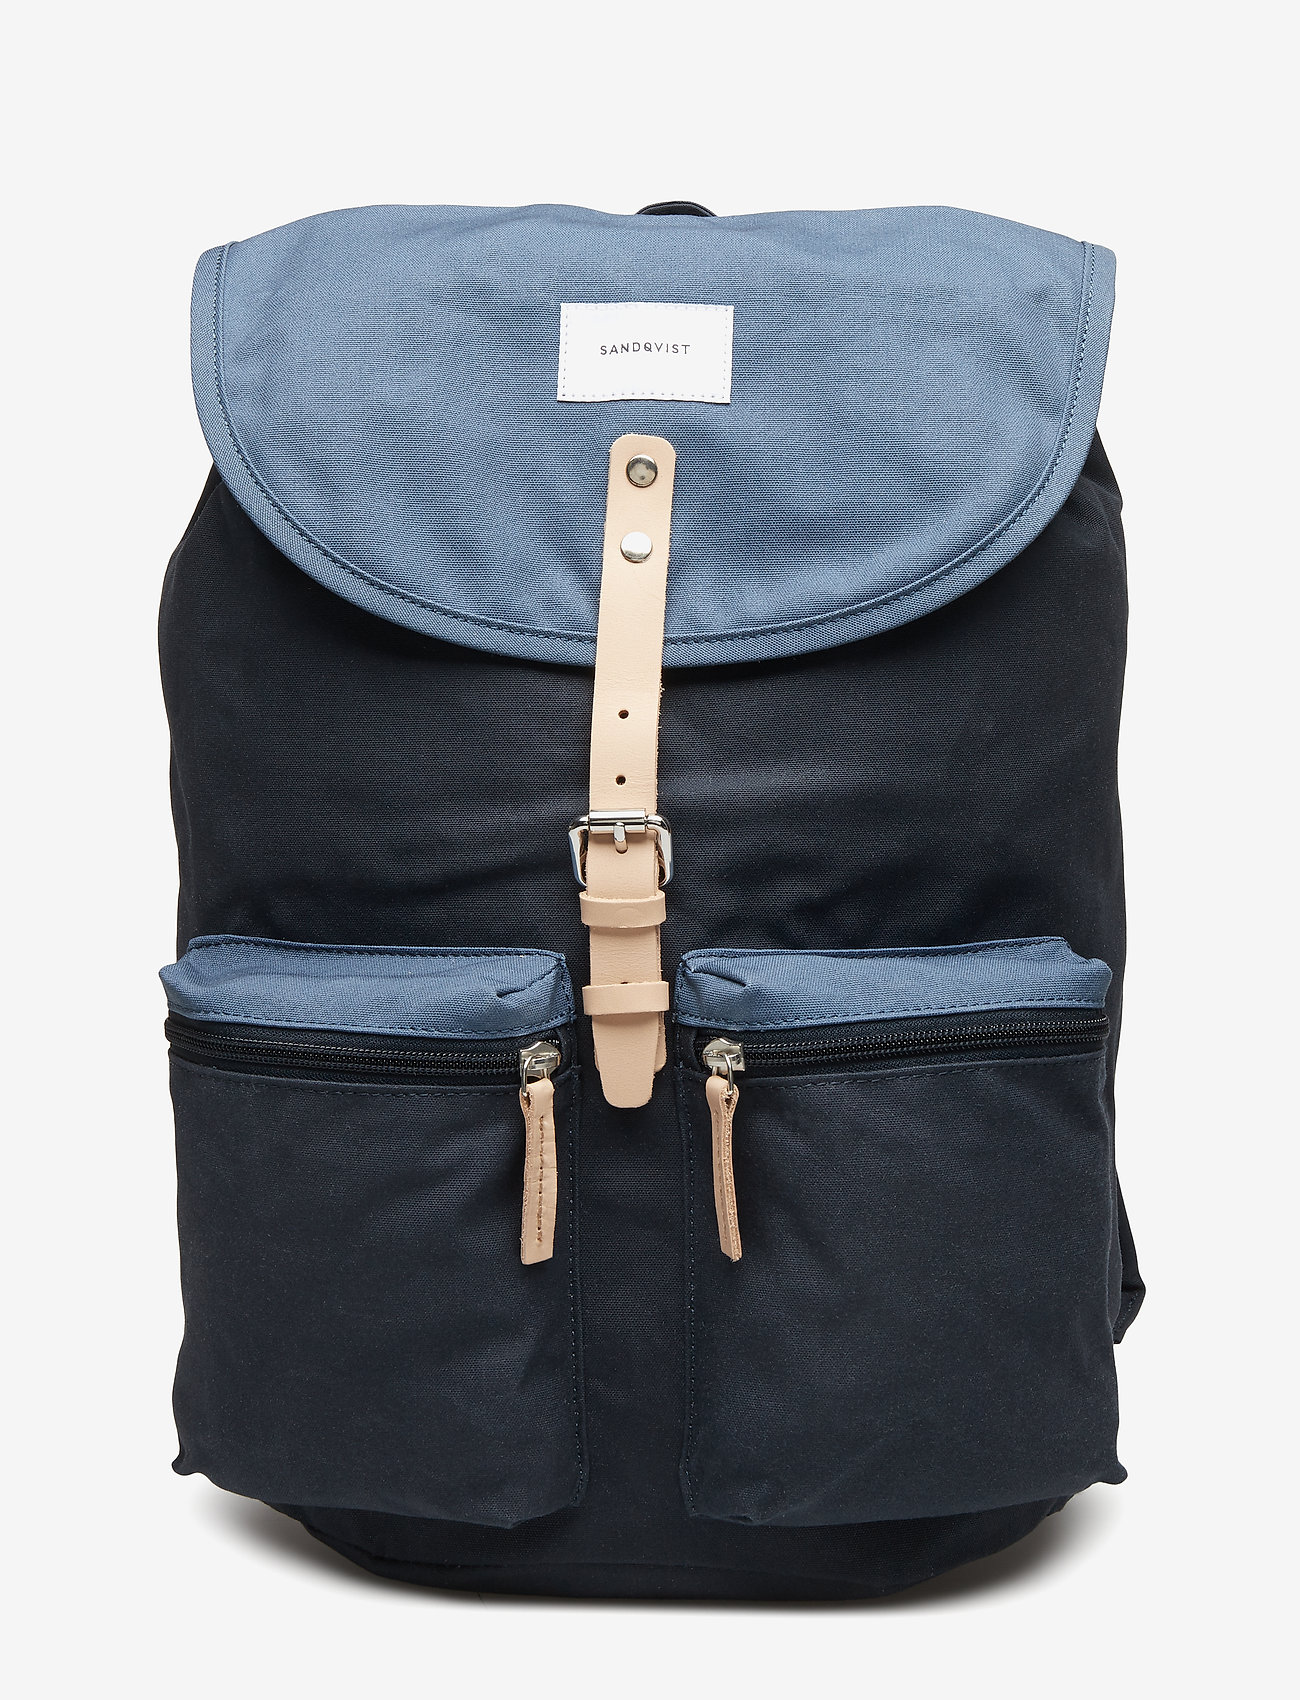 SANDQVIST - ROALD - backpacks - multi blue / dusty blue with natural leather